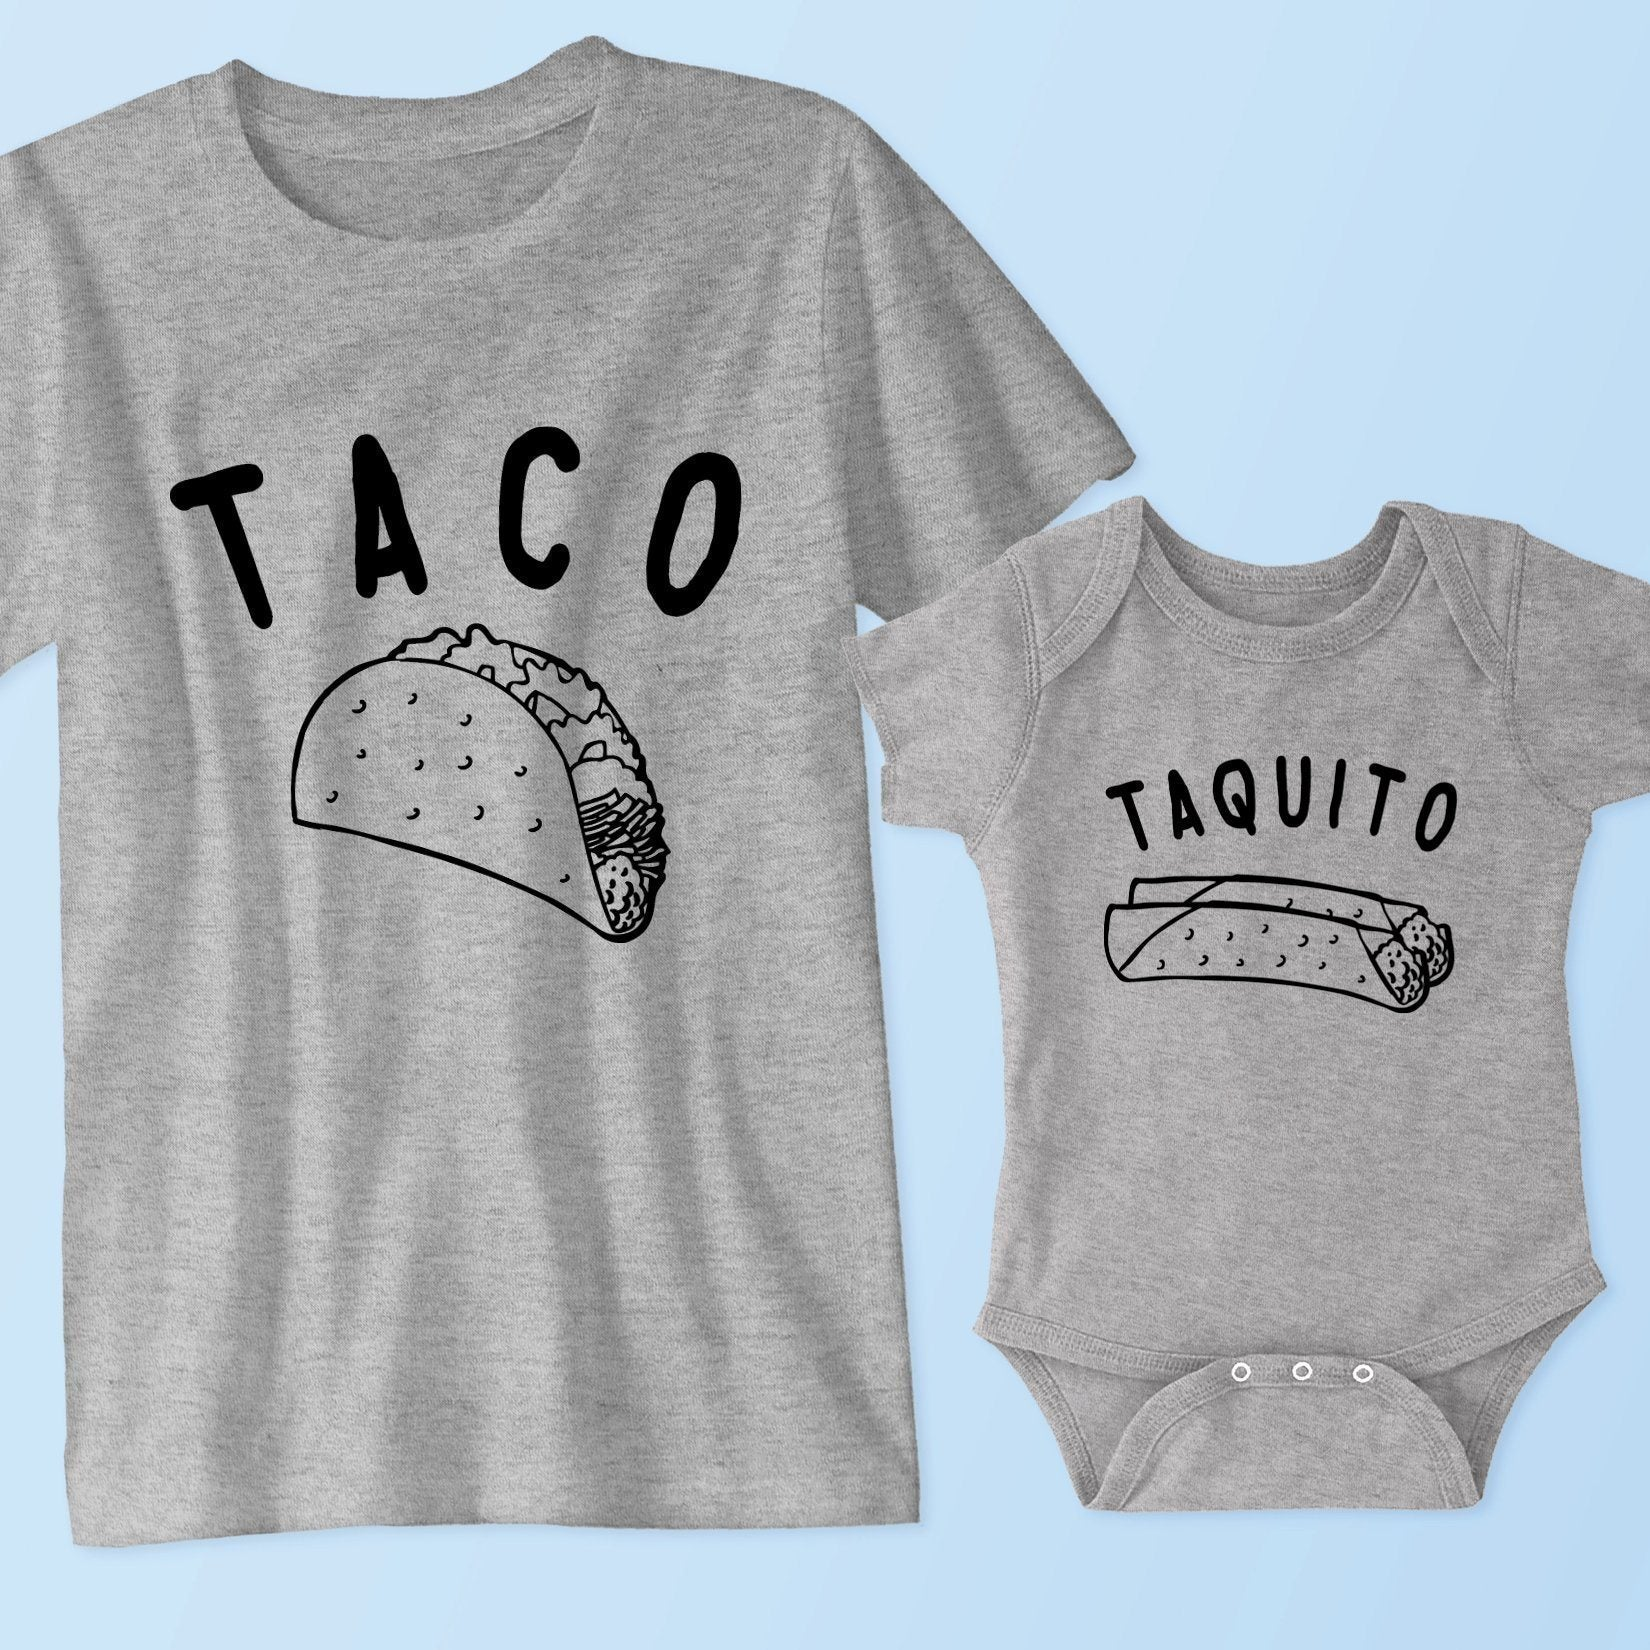 07424b3e2 Taco - Taquito (Matching Set) - Father and Son T Shirts, Onesies ...